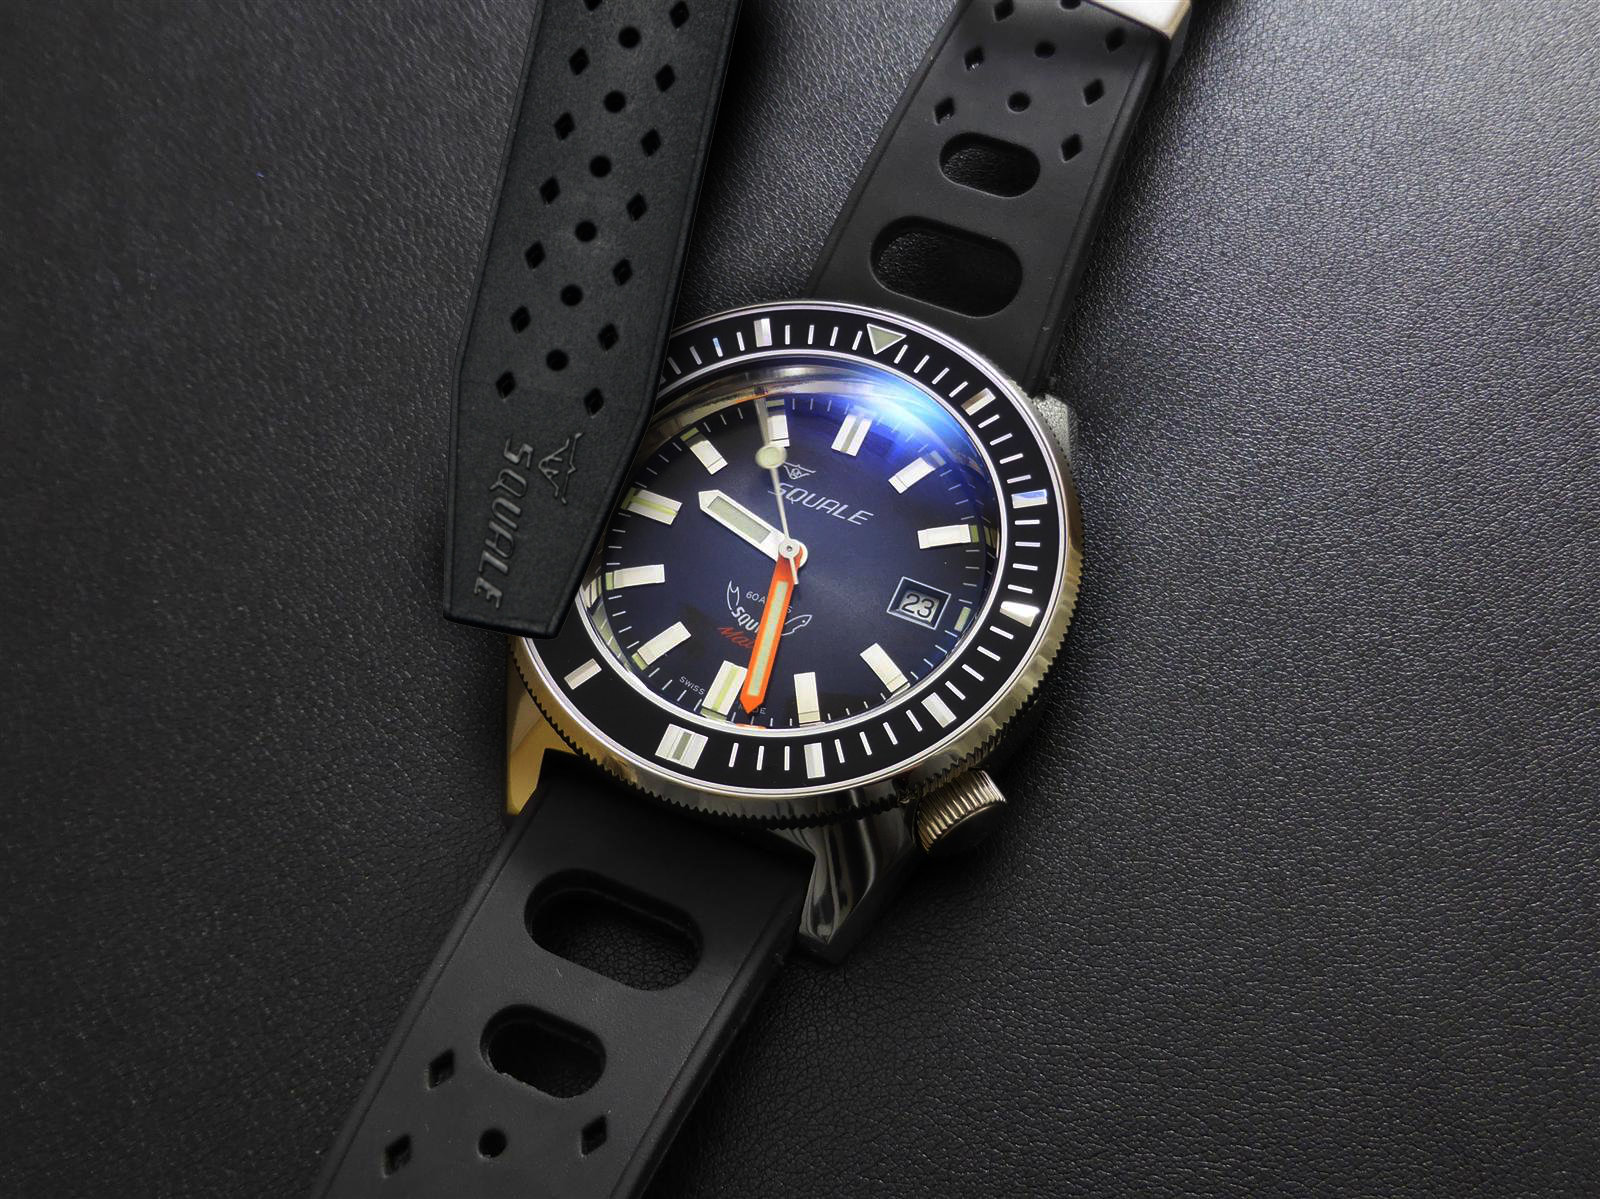 CUSTOM DESIGN. THE COLLABORATION WITH SQUALE